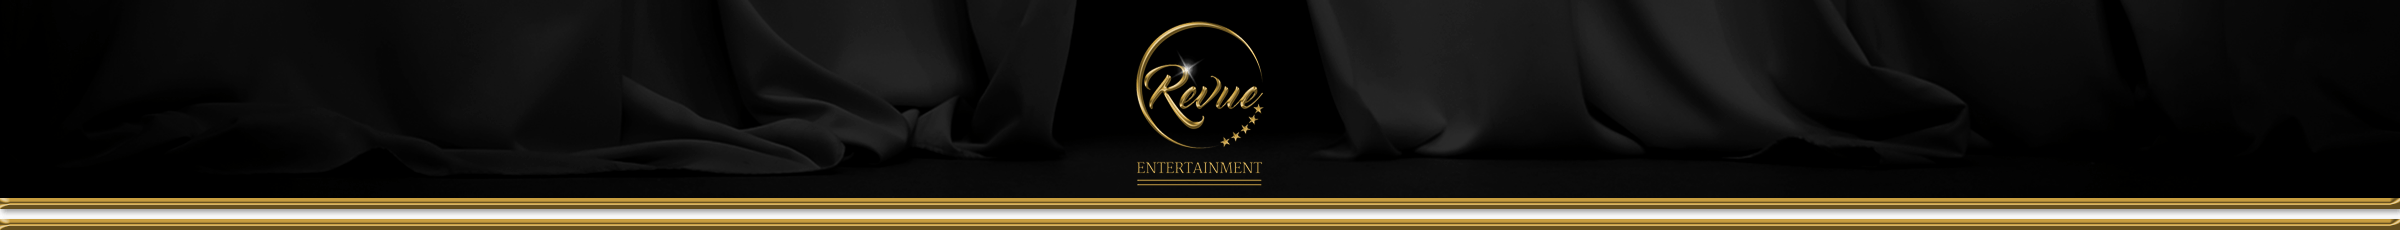 RevueEntertainment